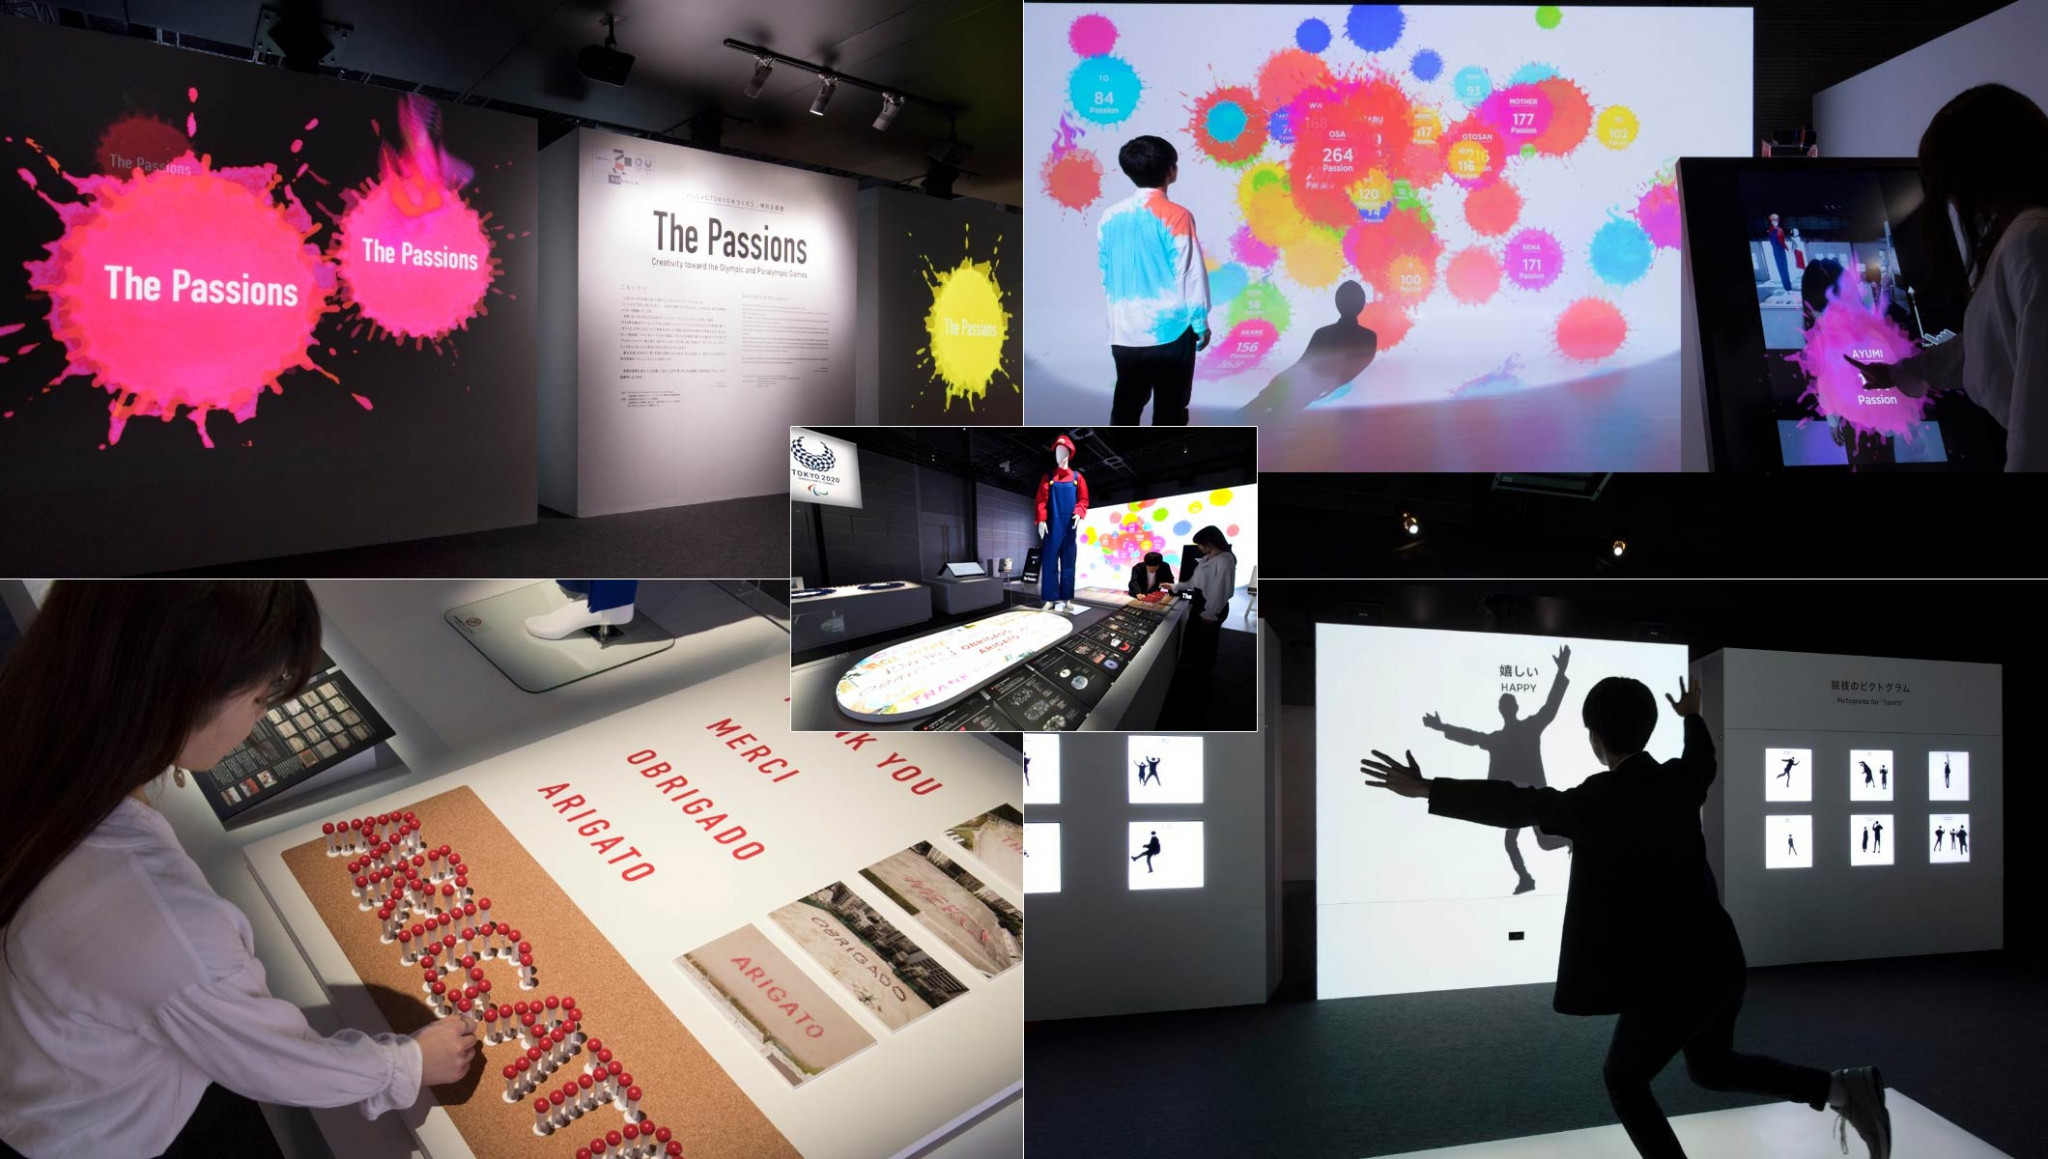 Panasonic stage exhibition in Tokyo highlighting work of designers at Olympic Games